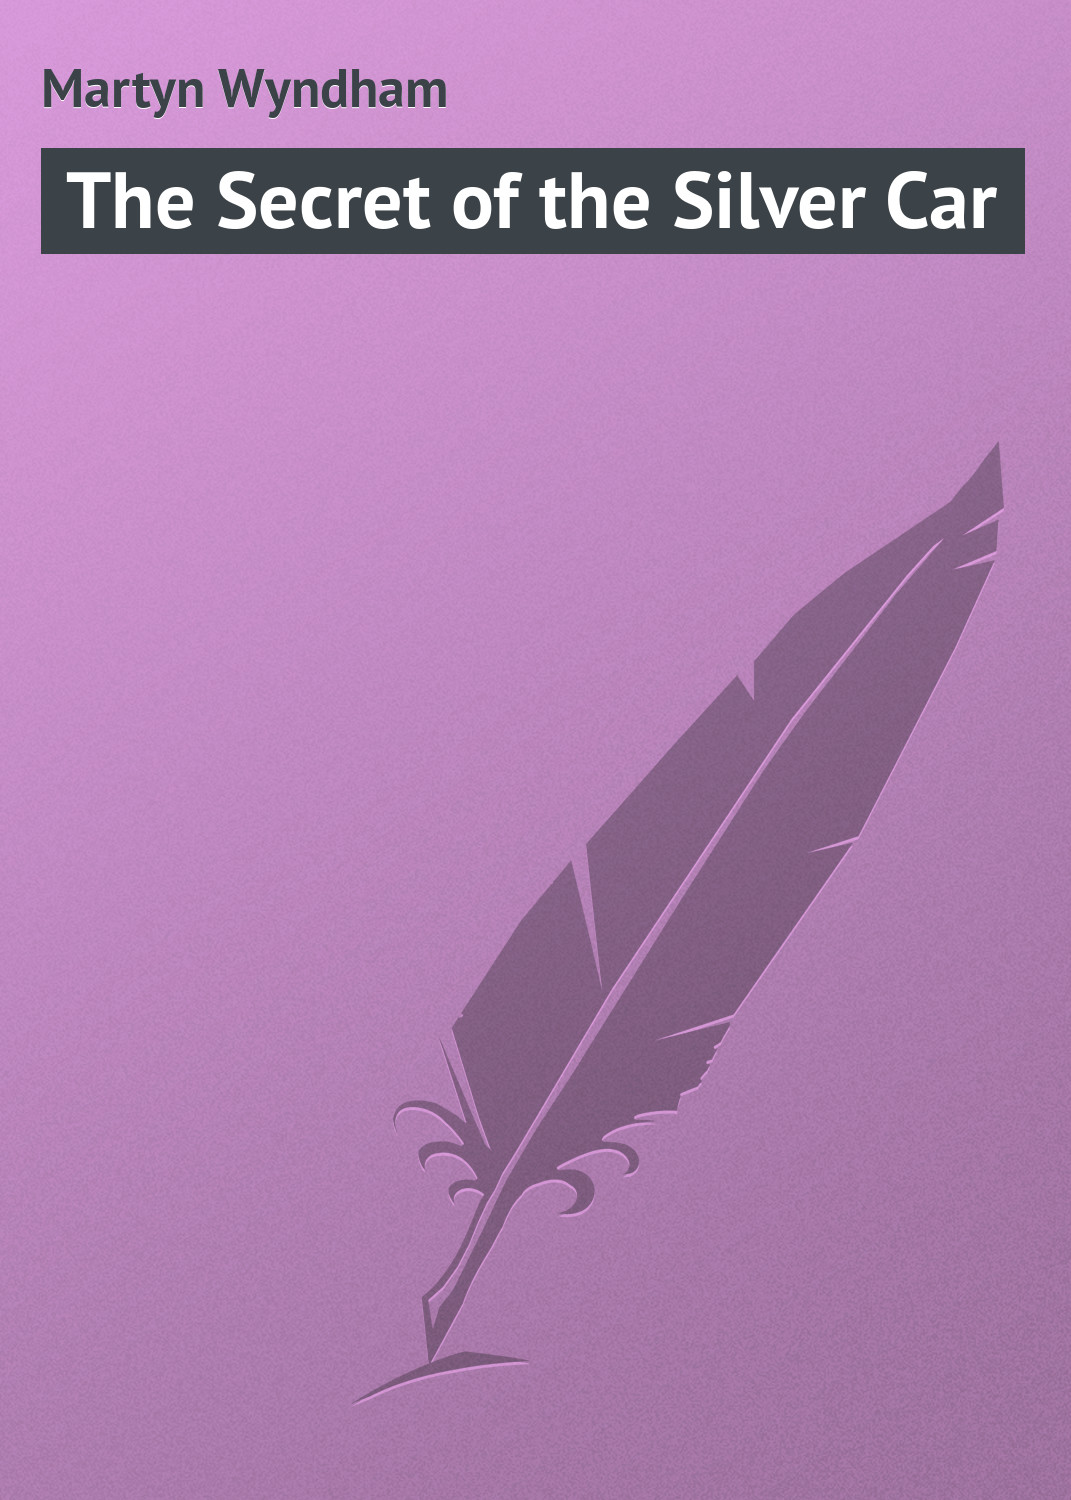 Martyn Wyndham The Secret of the Silver Car